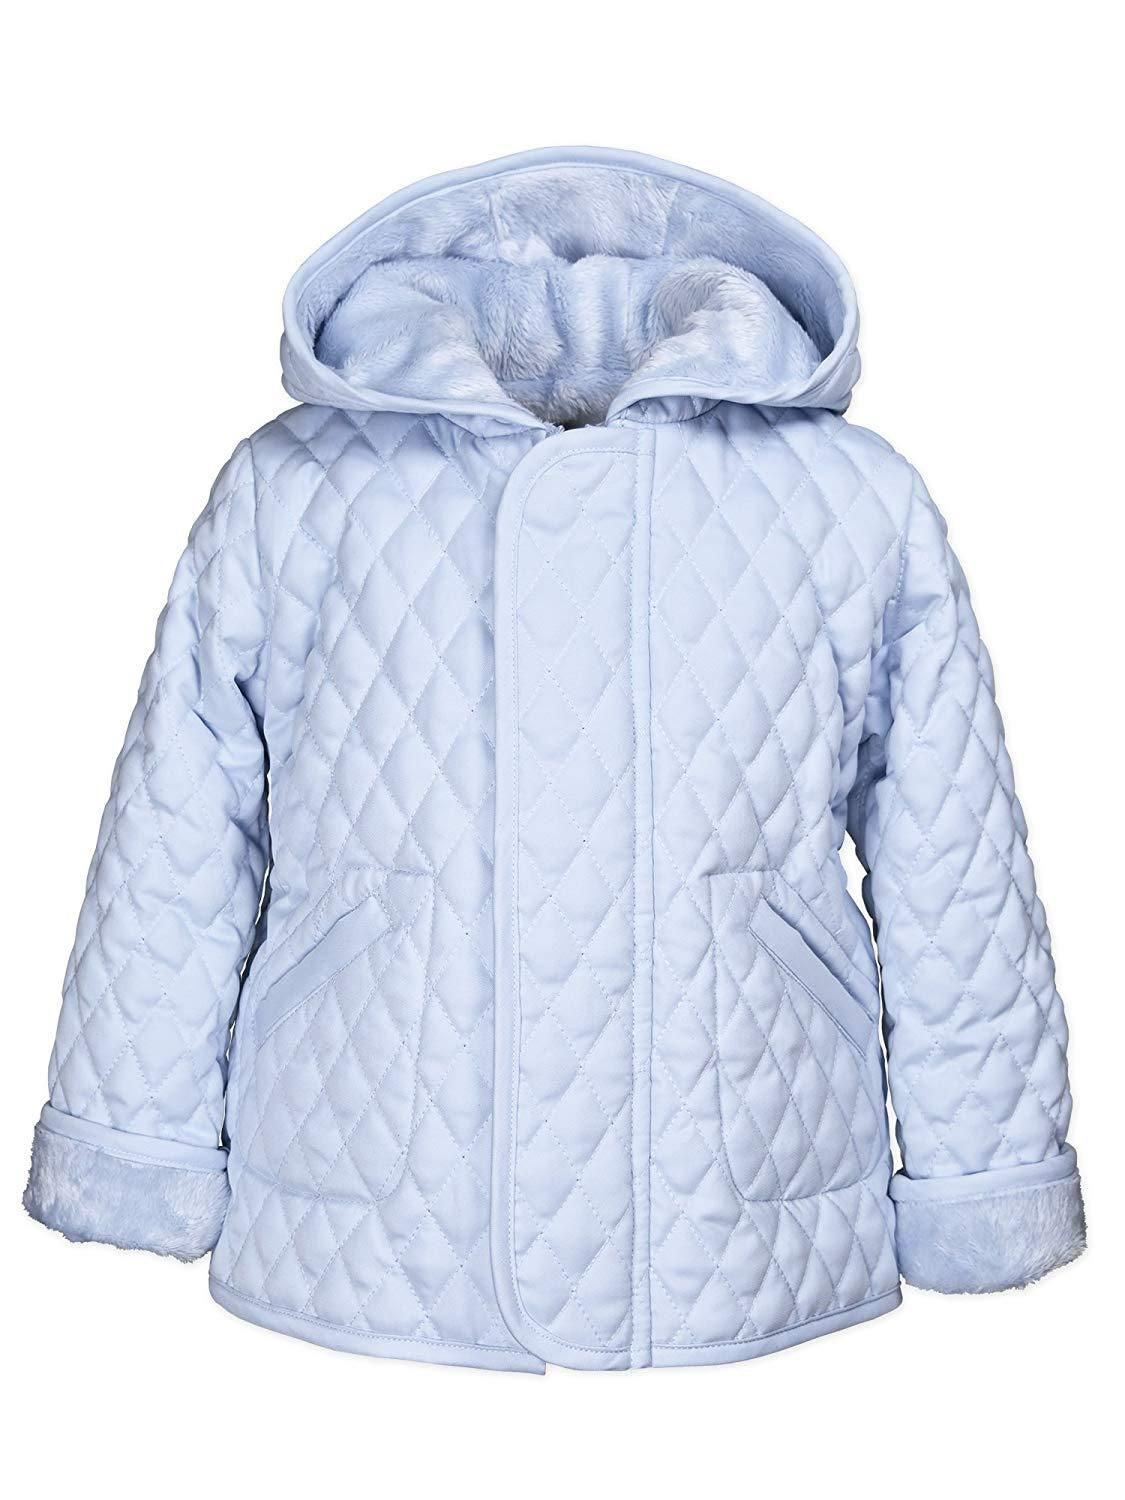 e959d56d2 Widgeon Light Blue Hooded Barn Jacket (2T and 3T only)